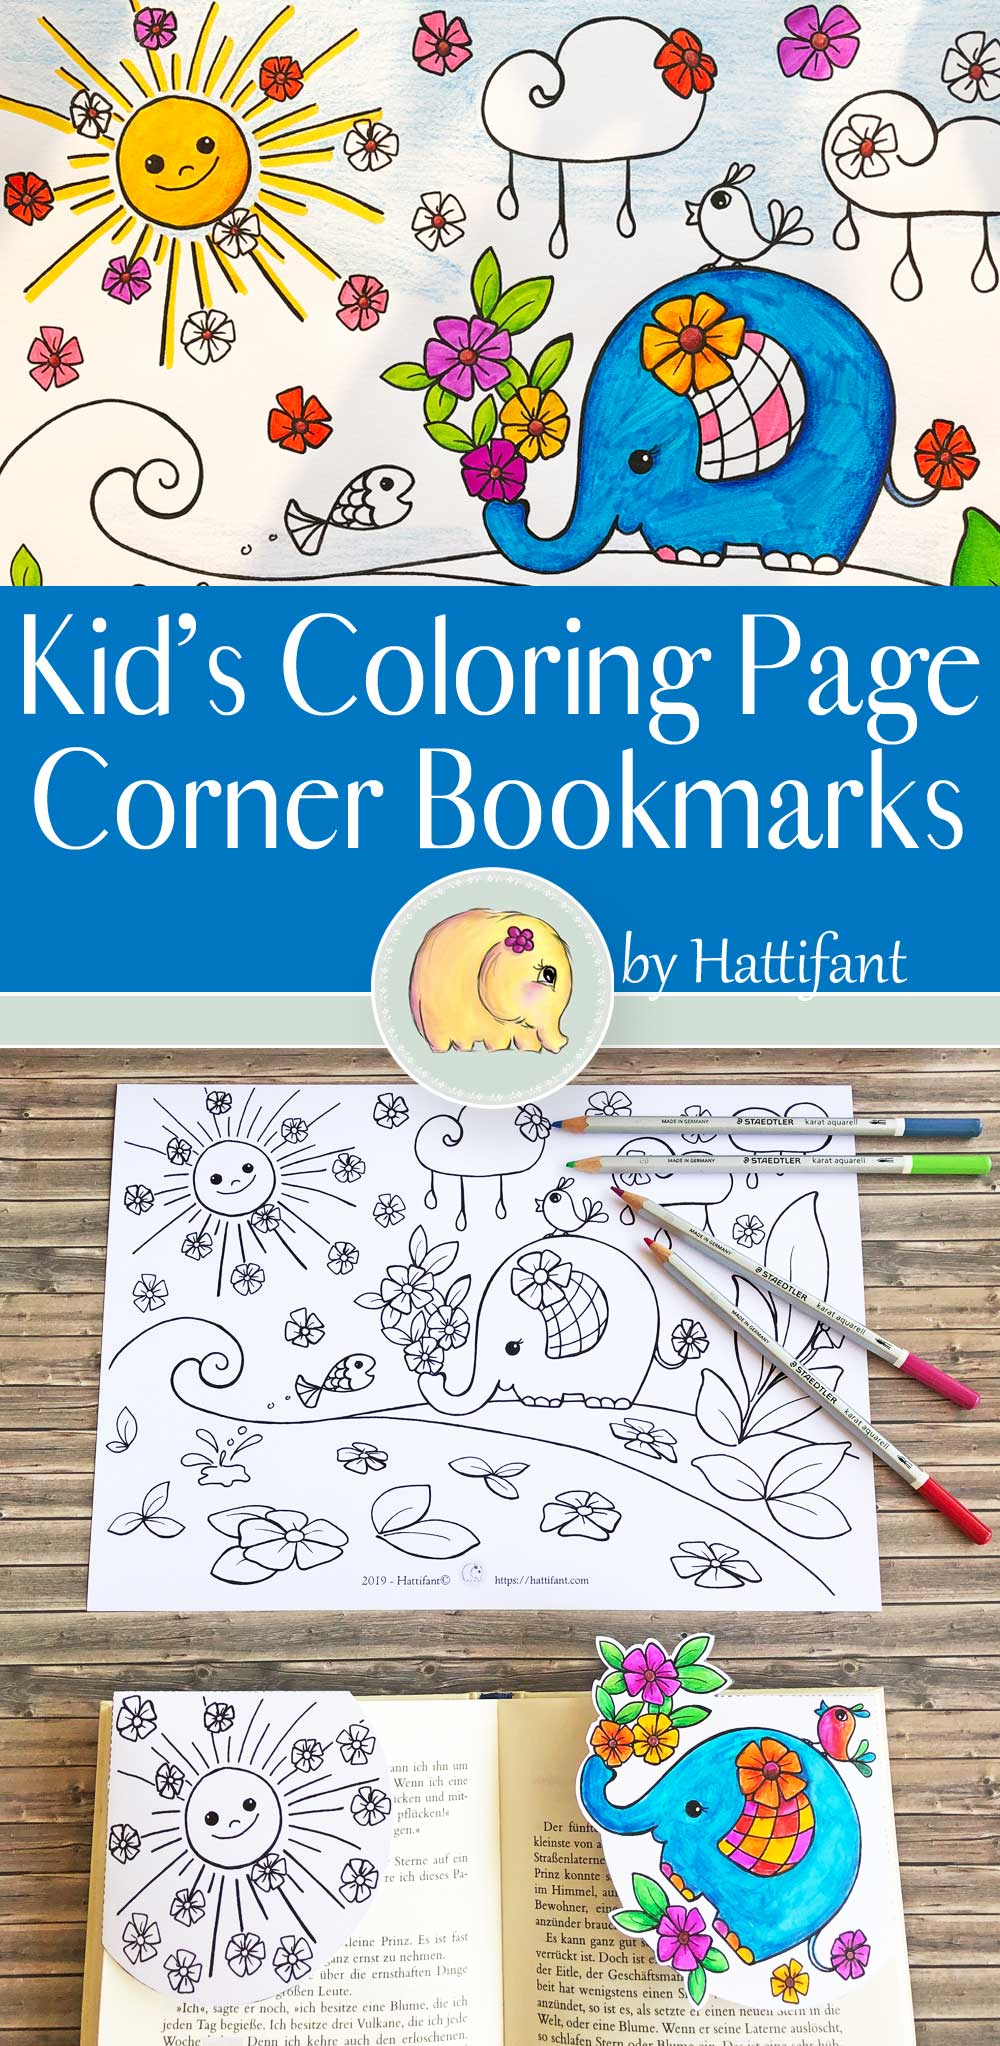 Hattifant's Kids' Coloring Page and Corner Bookmarks Elephant Spring Flowers